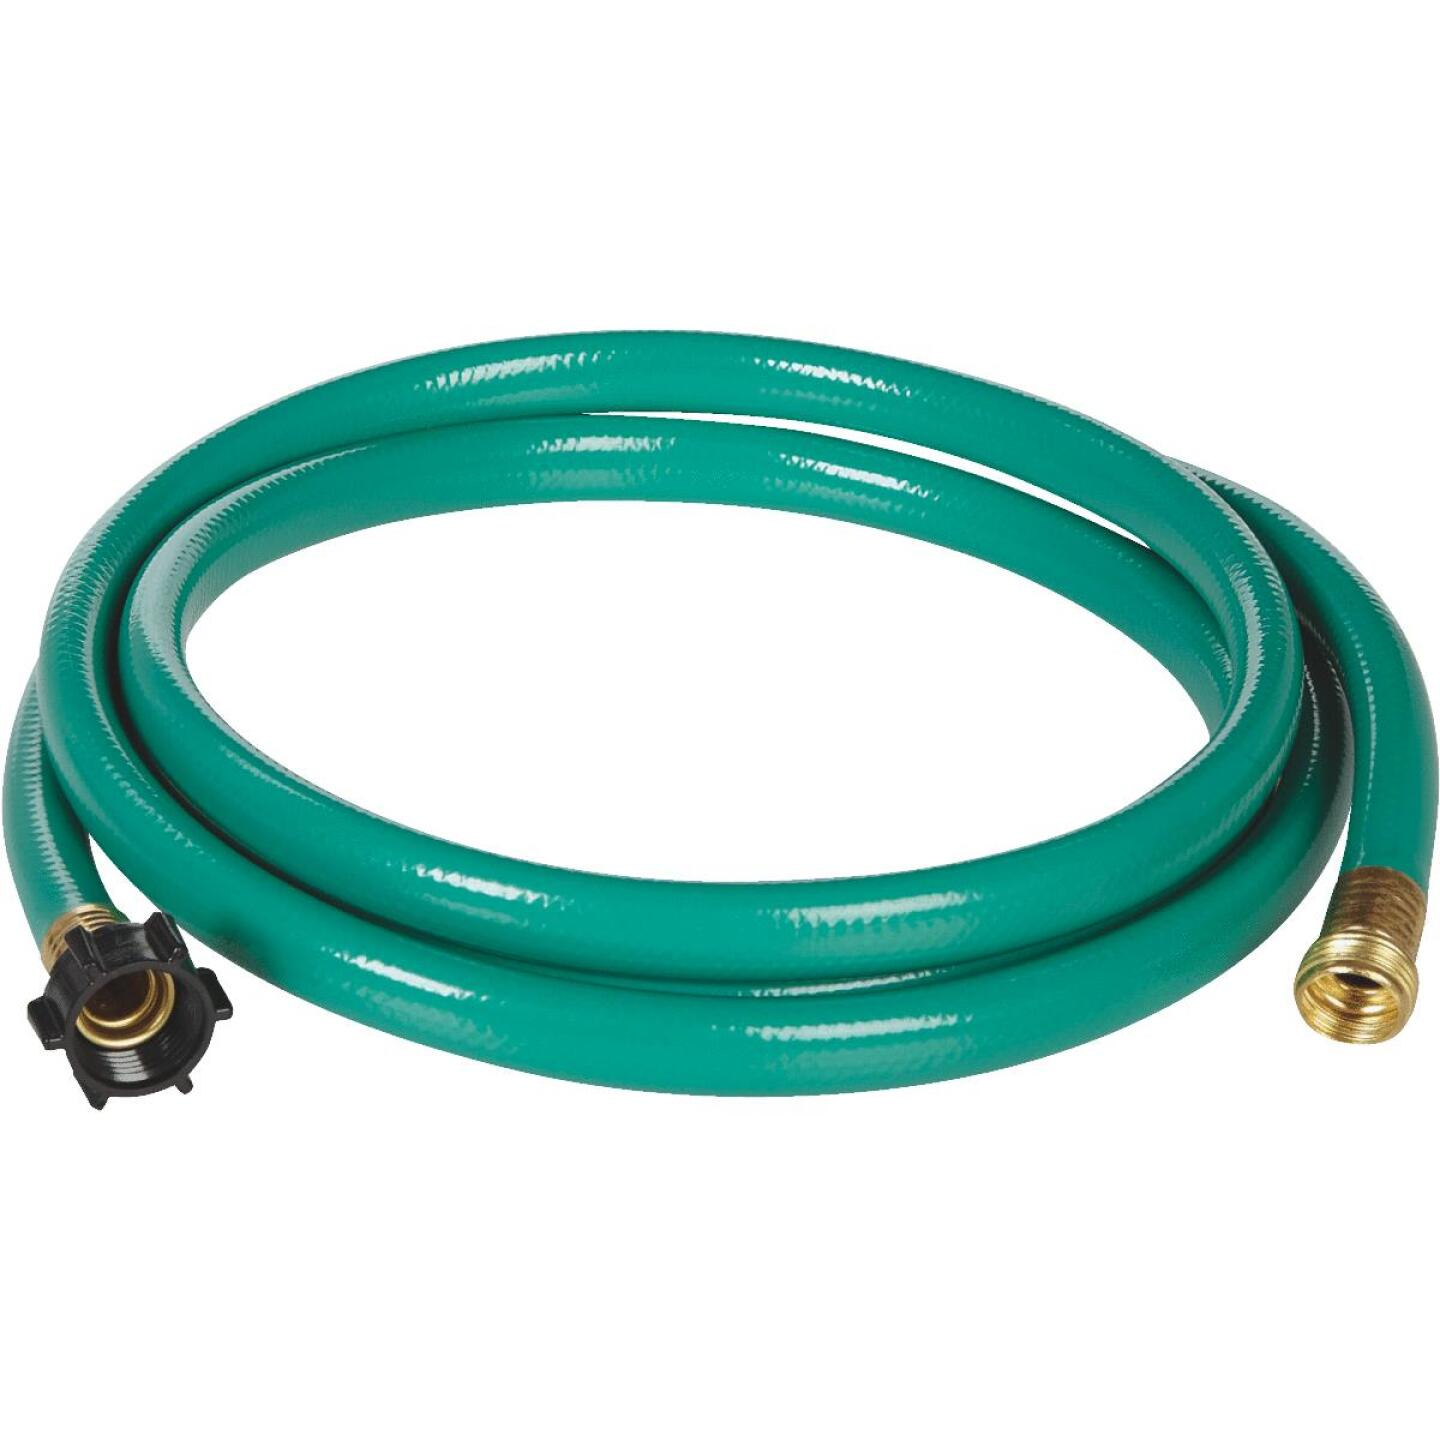 Best Garden 5/8 In. Dia. x 6 Ft. L. Leader Hose with Male & Female Couplings Image 2